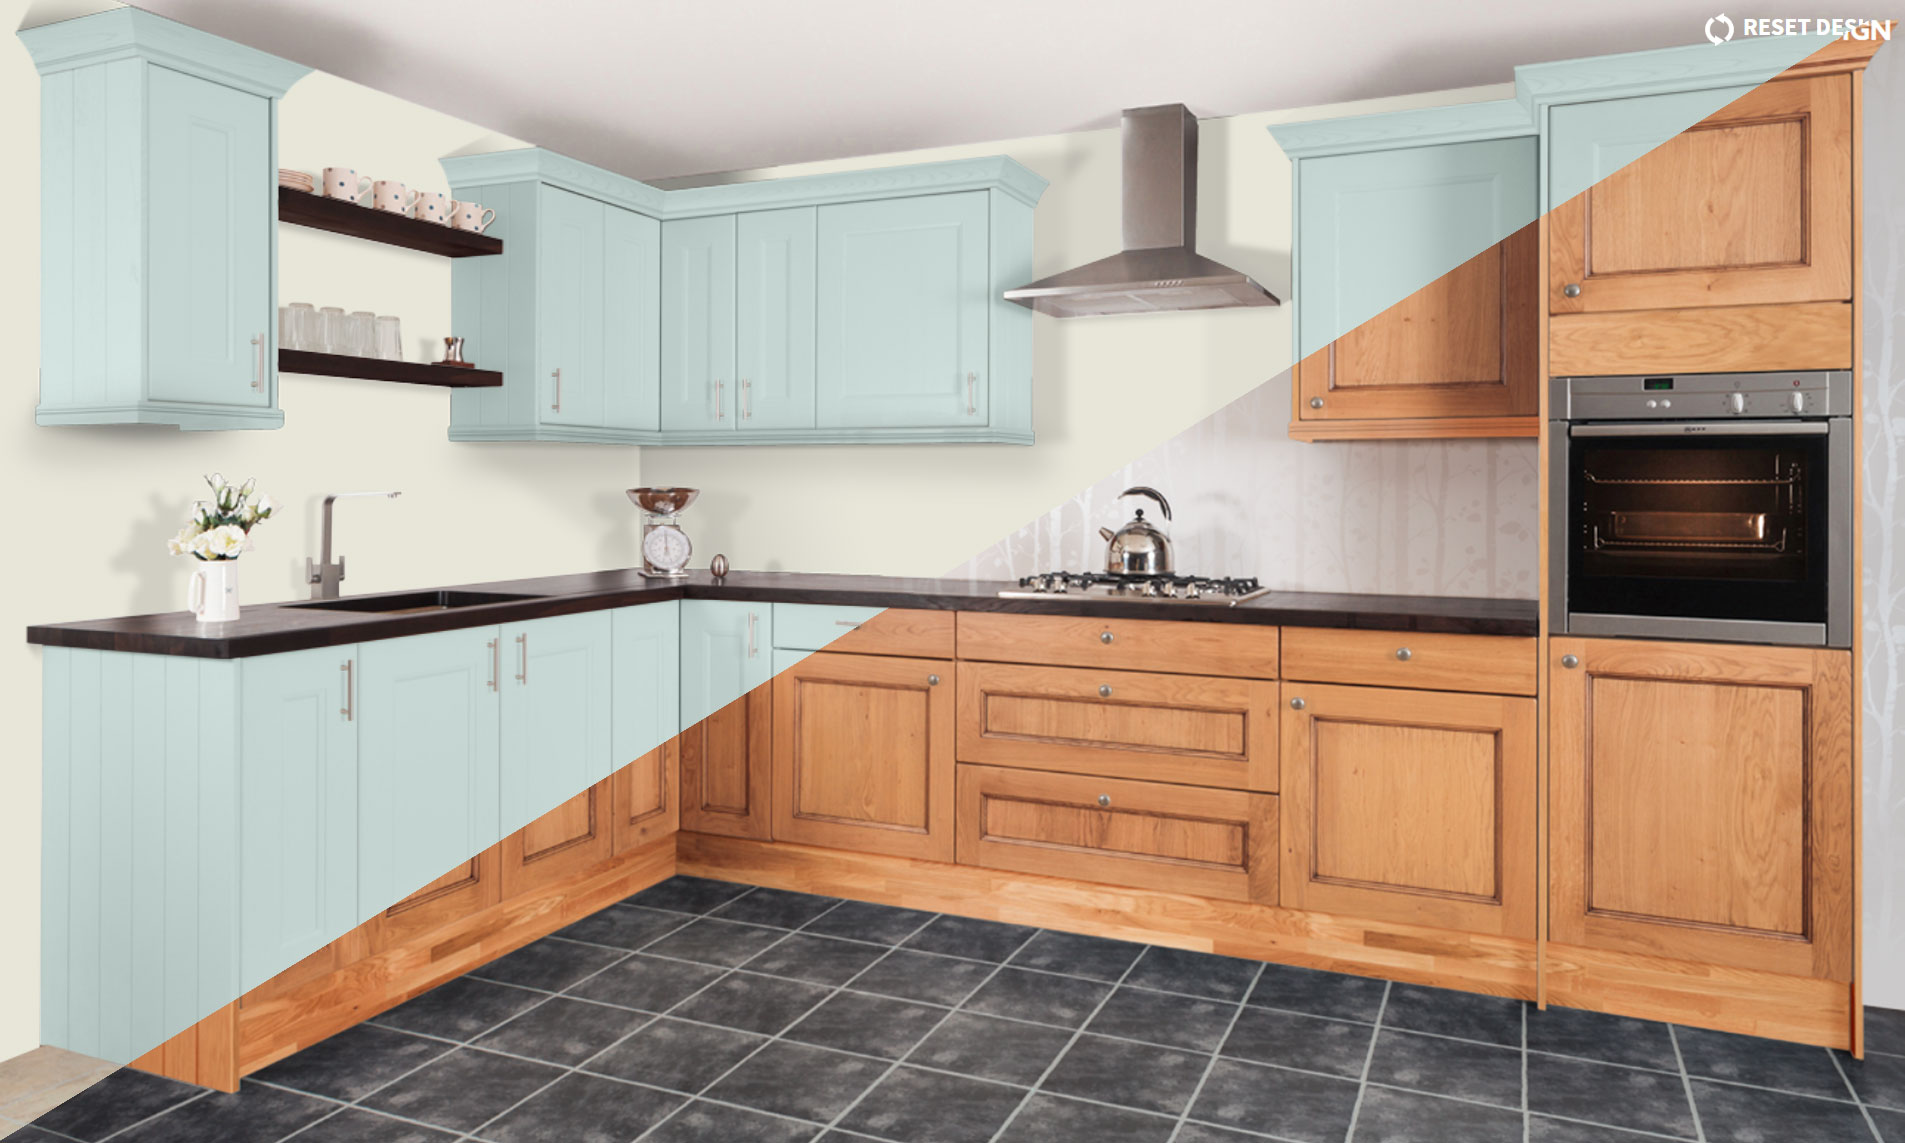 Discover your perfect design with our kitchen style tool